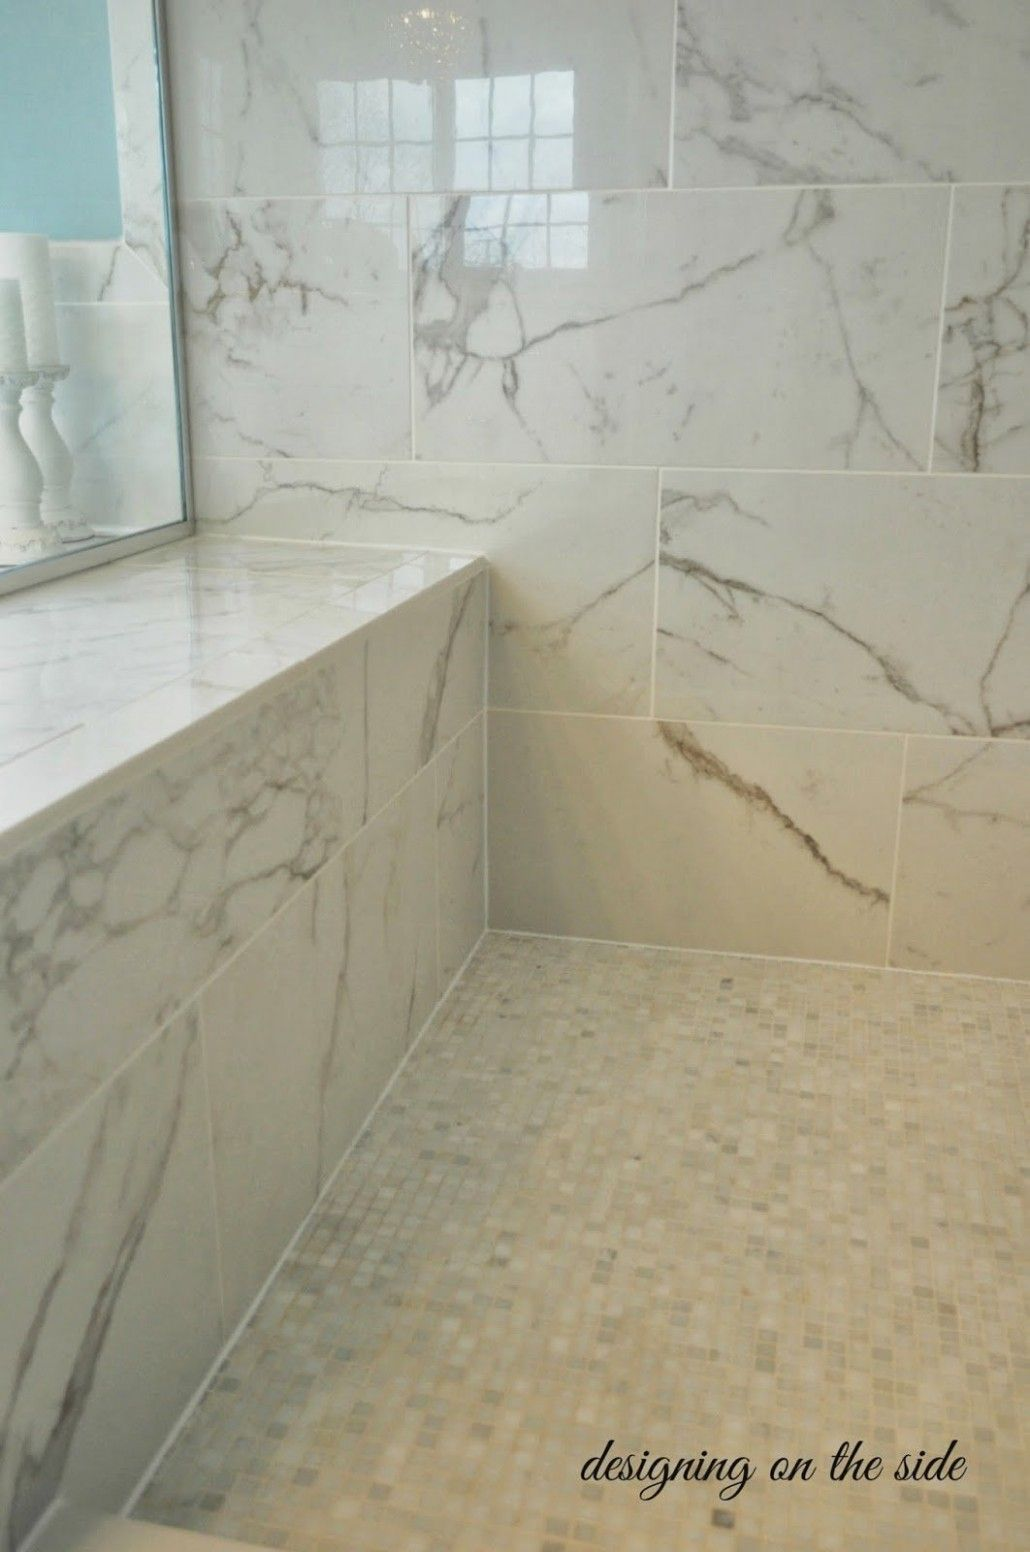 Master Bathroom Marble Images Master Bathroom Marble Images Master Bathroom Marble Images Steve And Sherry Saltzman Are Chargeless Alcohol Who Accept Consiste Di 2020